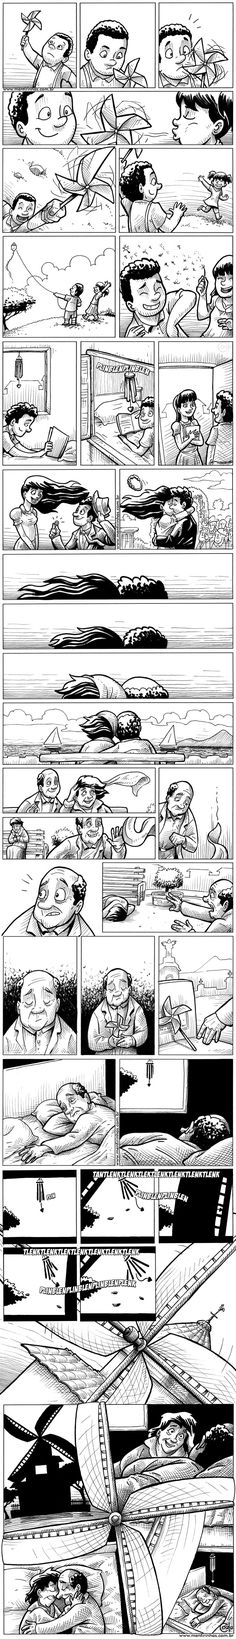 We're all stories, in the end. Just make it a #good one. #Life #Comic